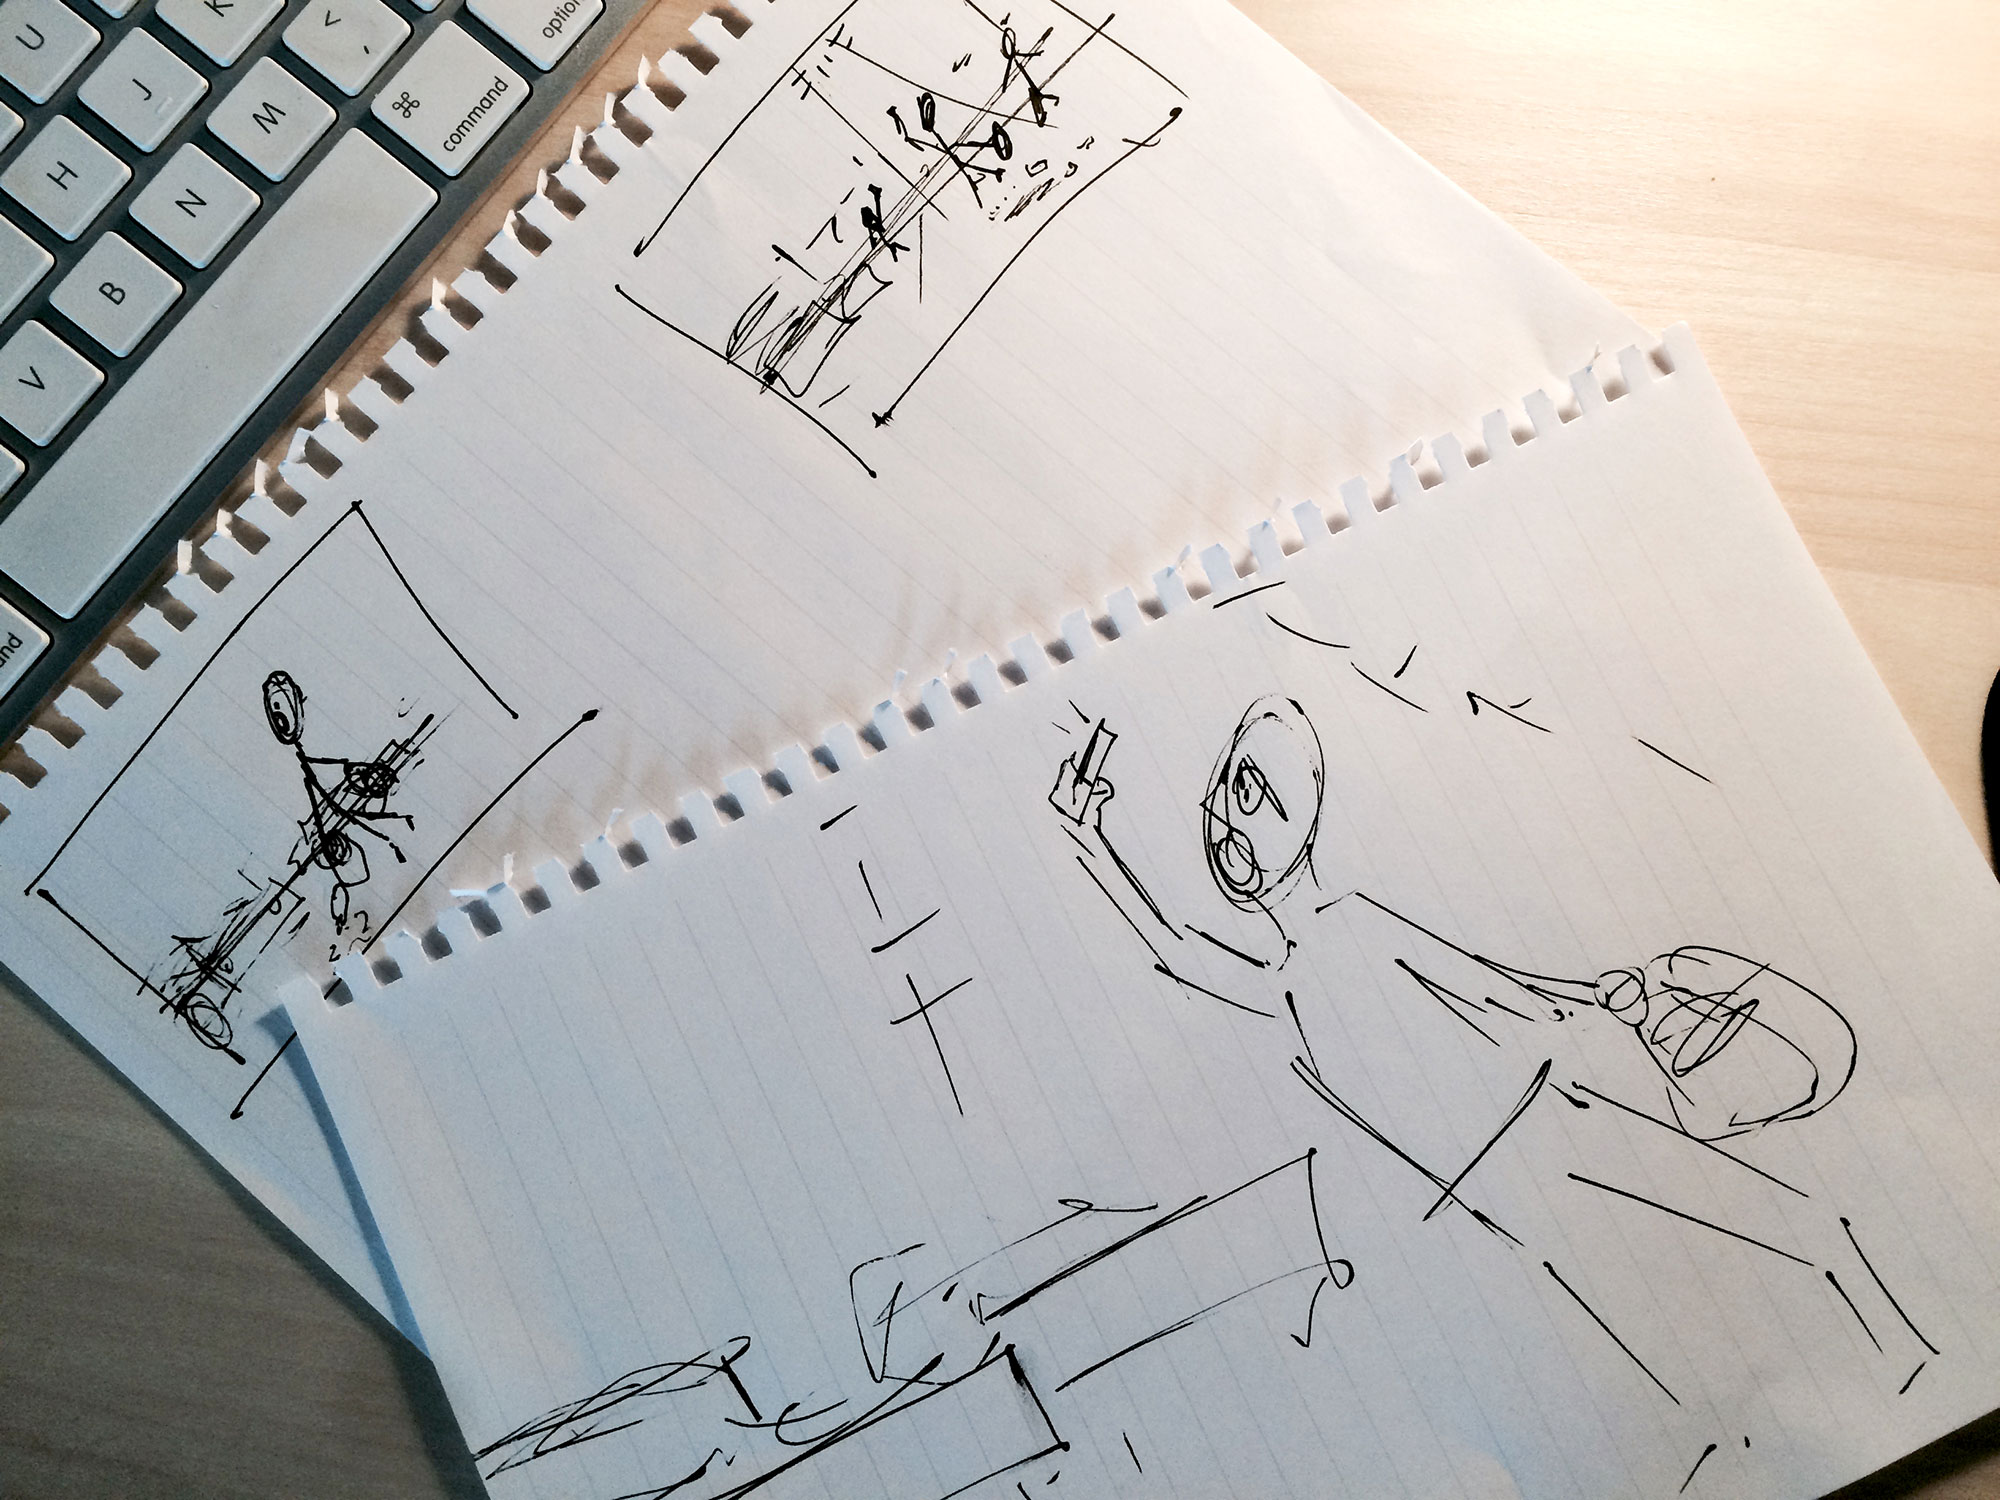 Quick and dirty sketches of the scene. Storyboarding is a good way to solidify your idea.